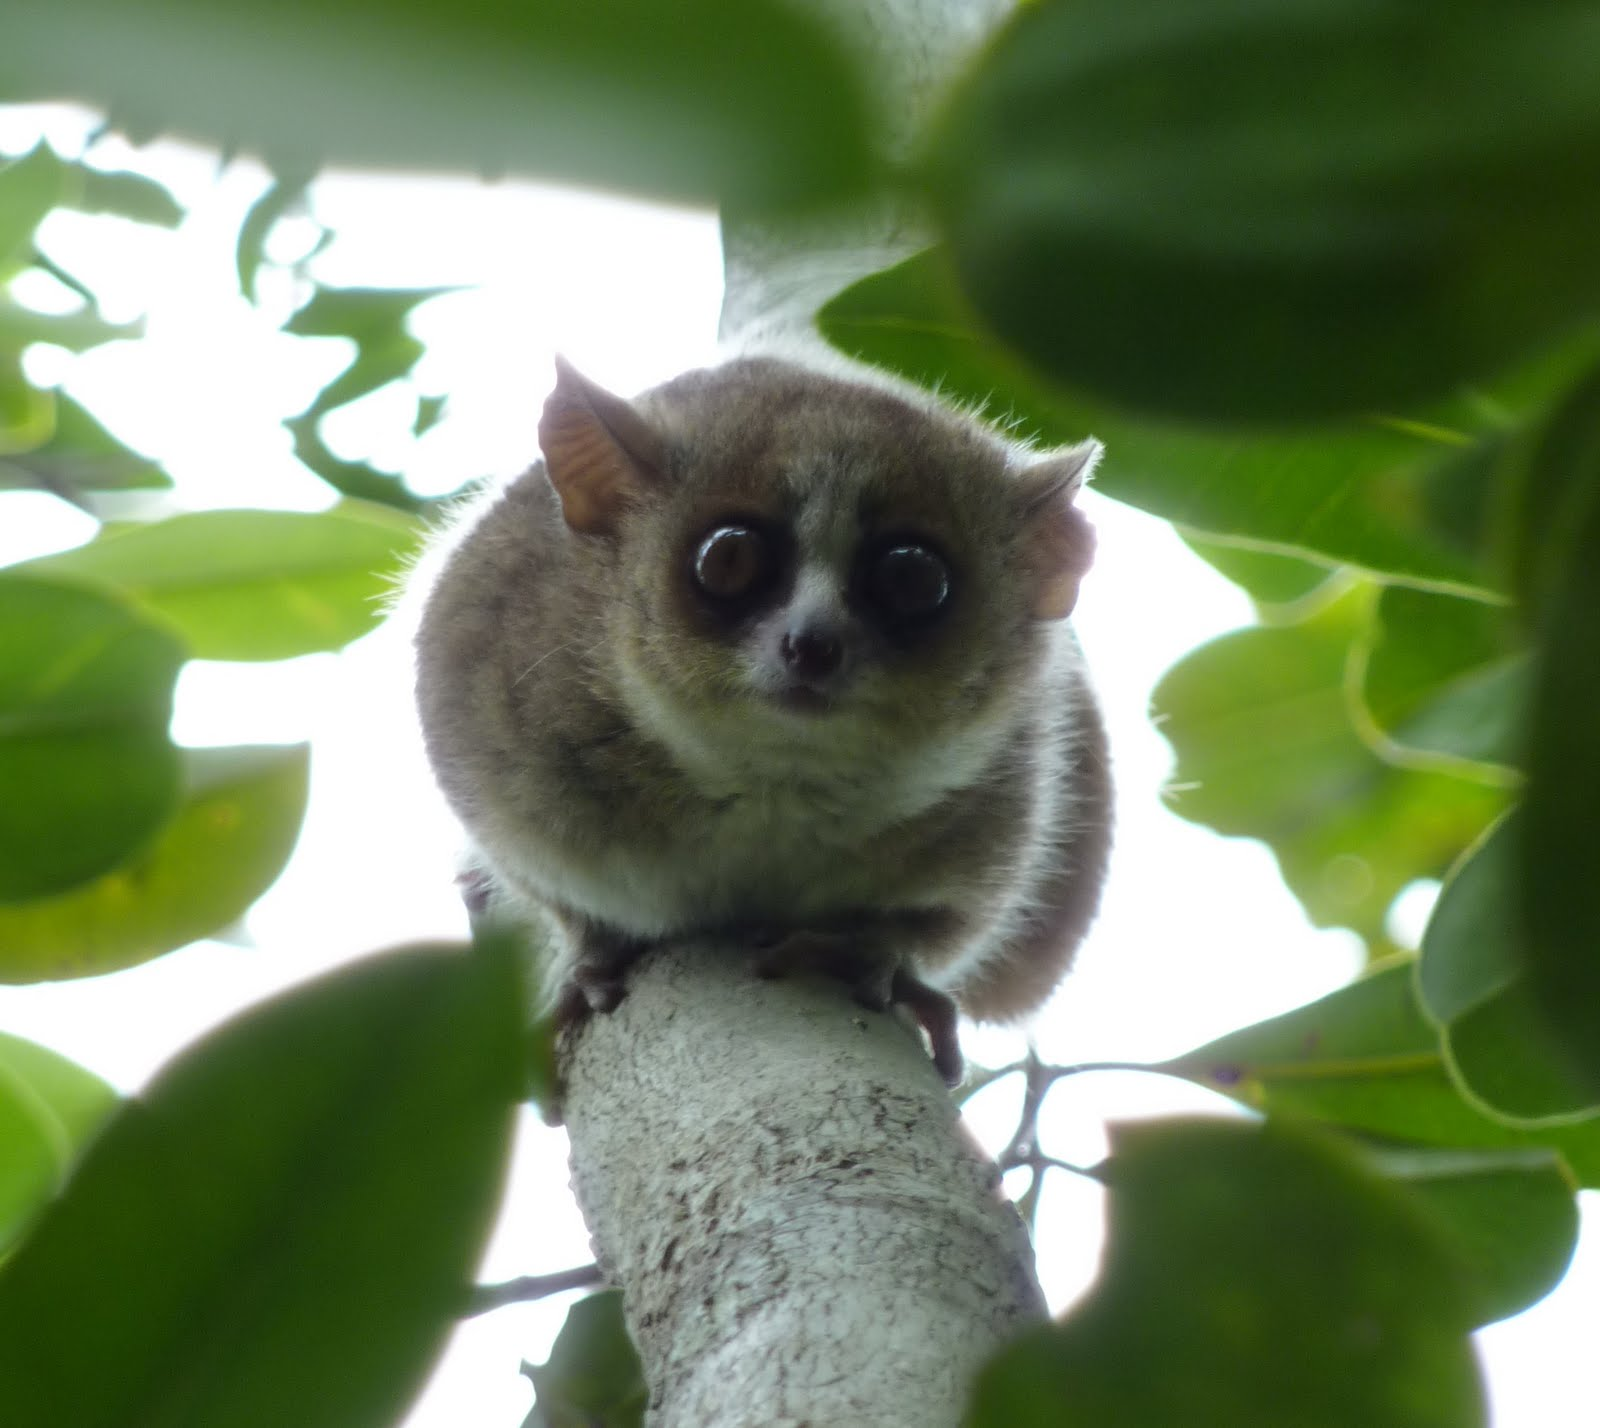 This is a recently discovered lemur species that is awesome.